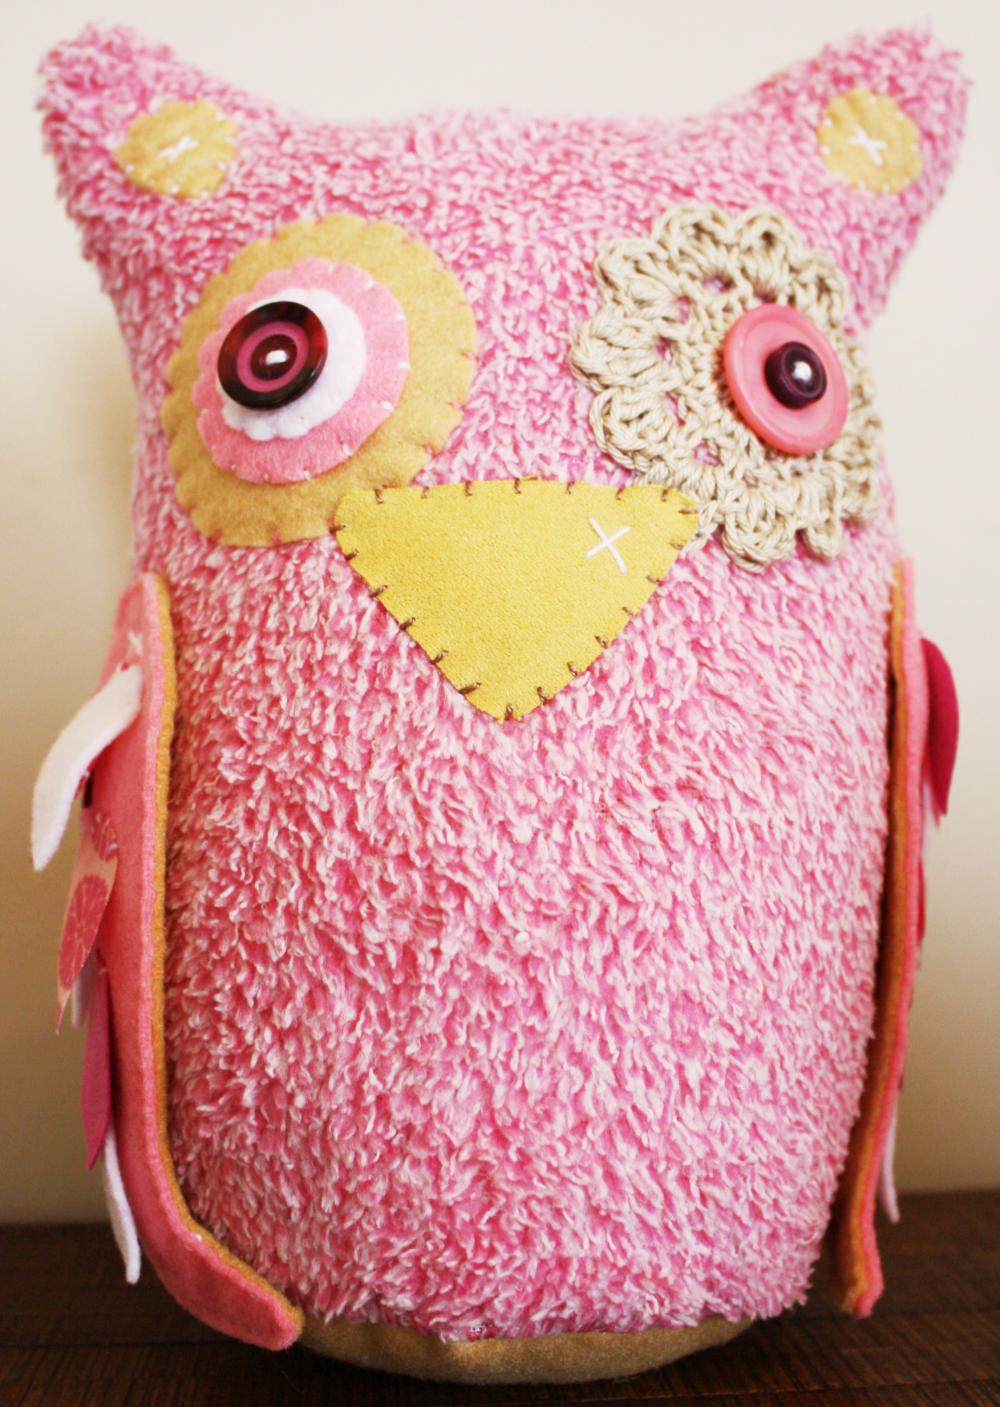 BOObeloobie Large Orli the Owl in Pink, Cream and white accents with crochet eye detail